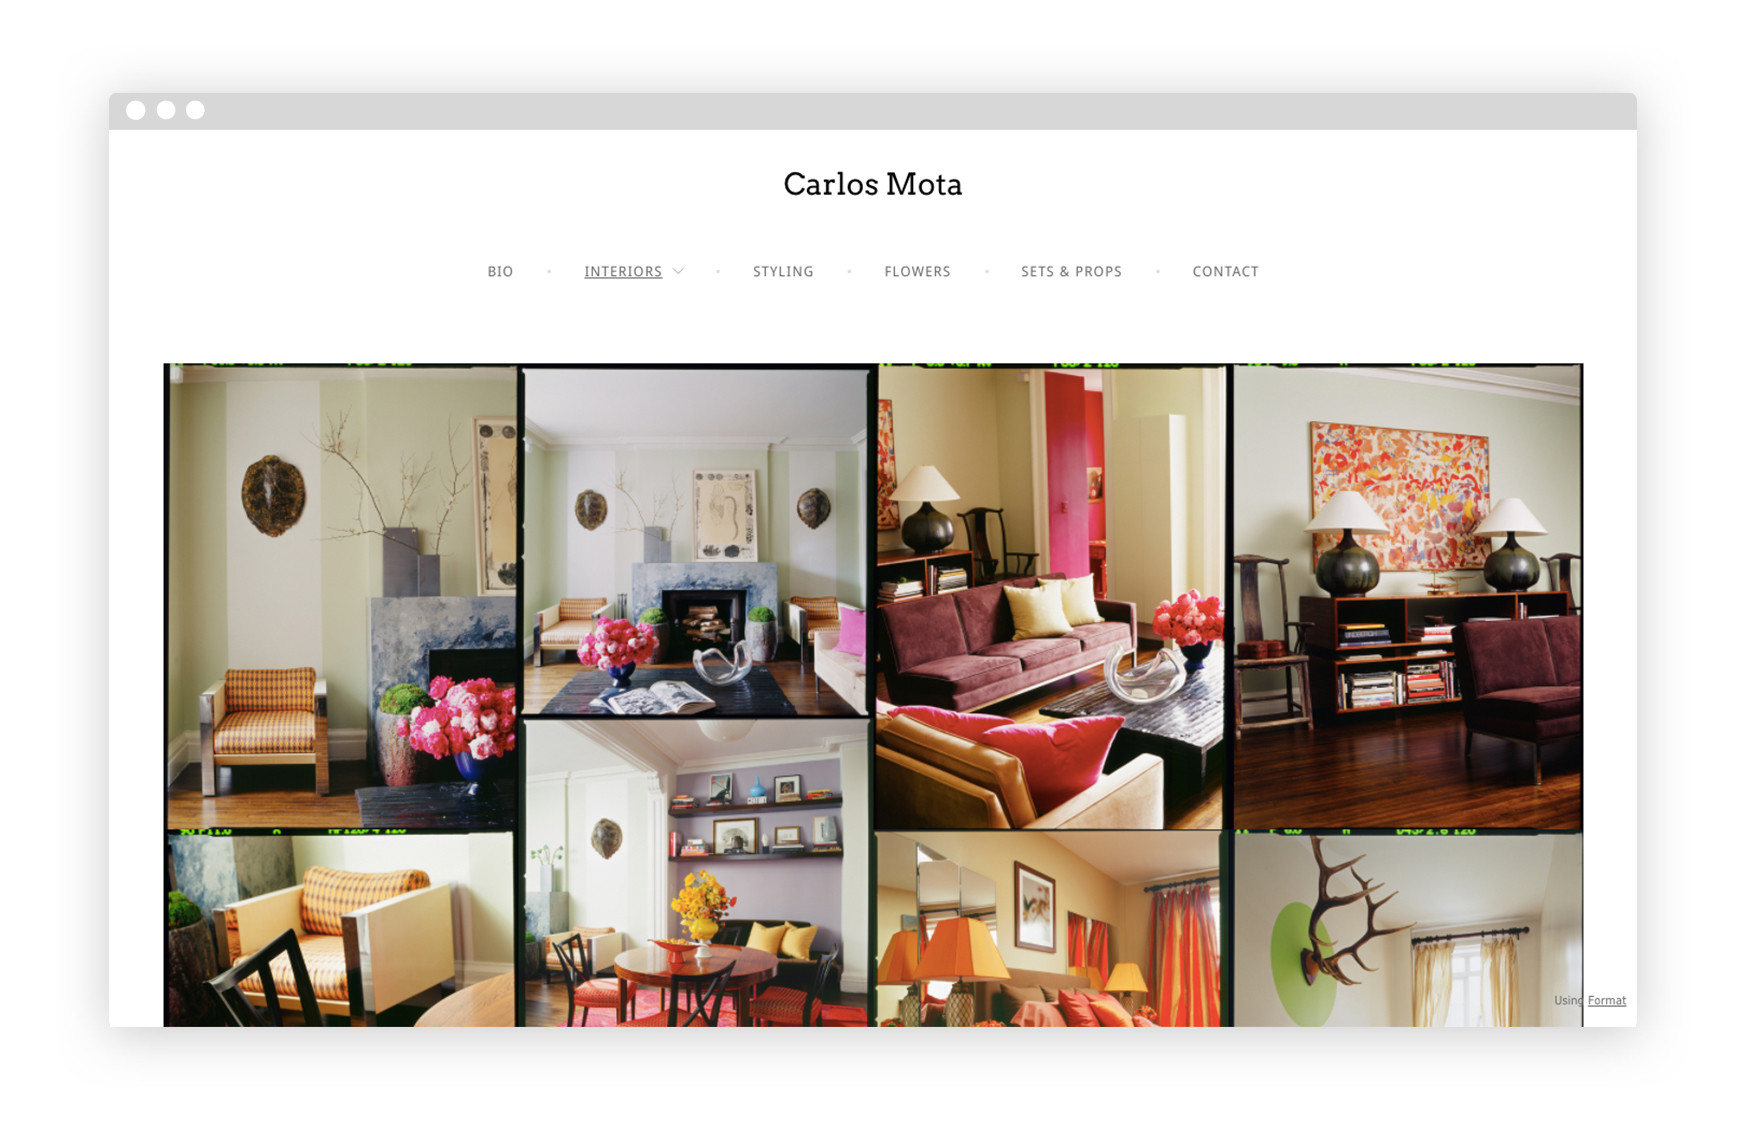 10 interior design portfolio website examples we love